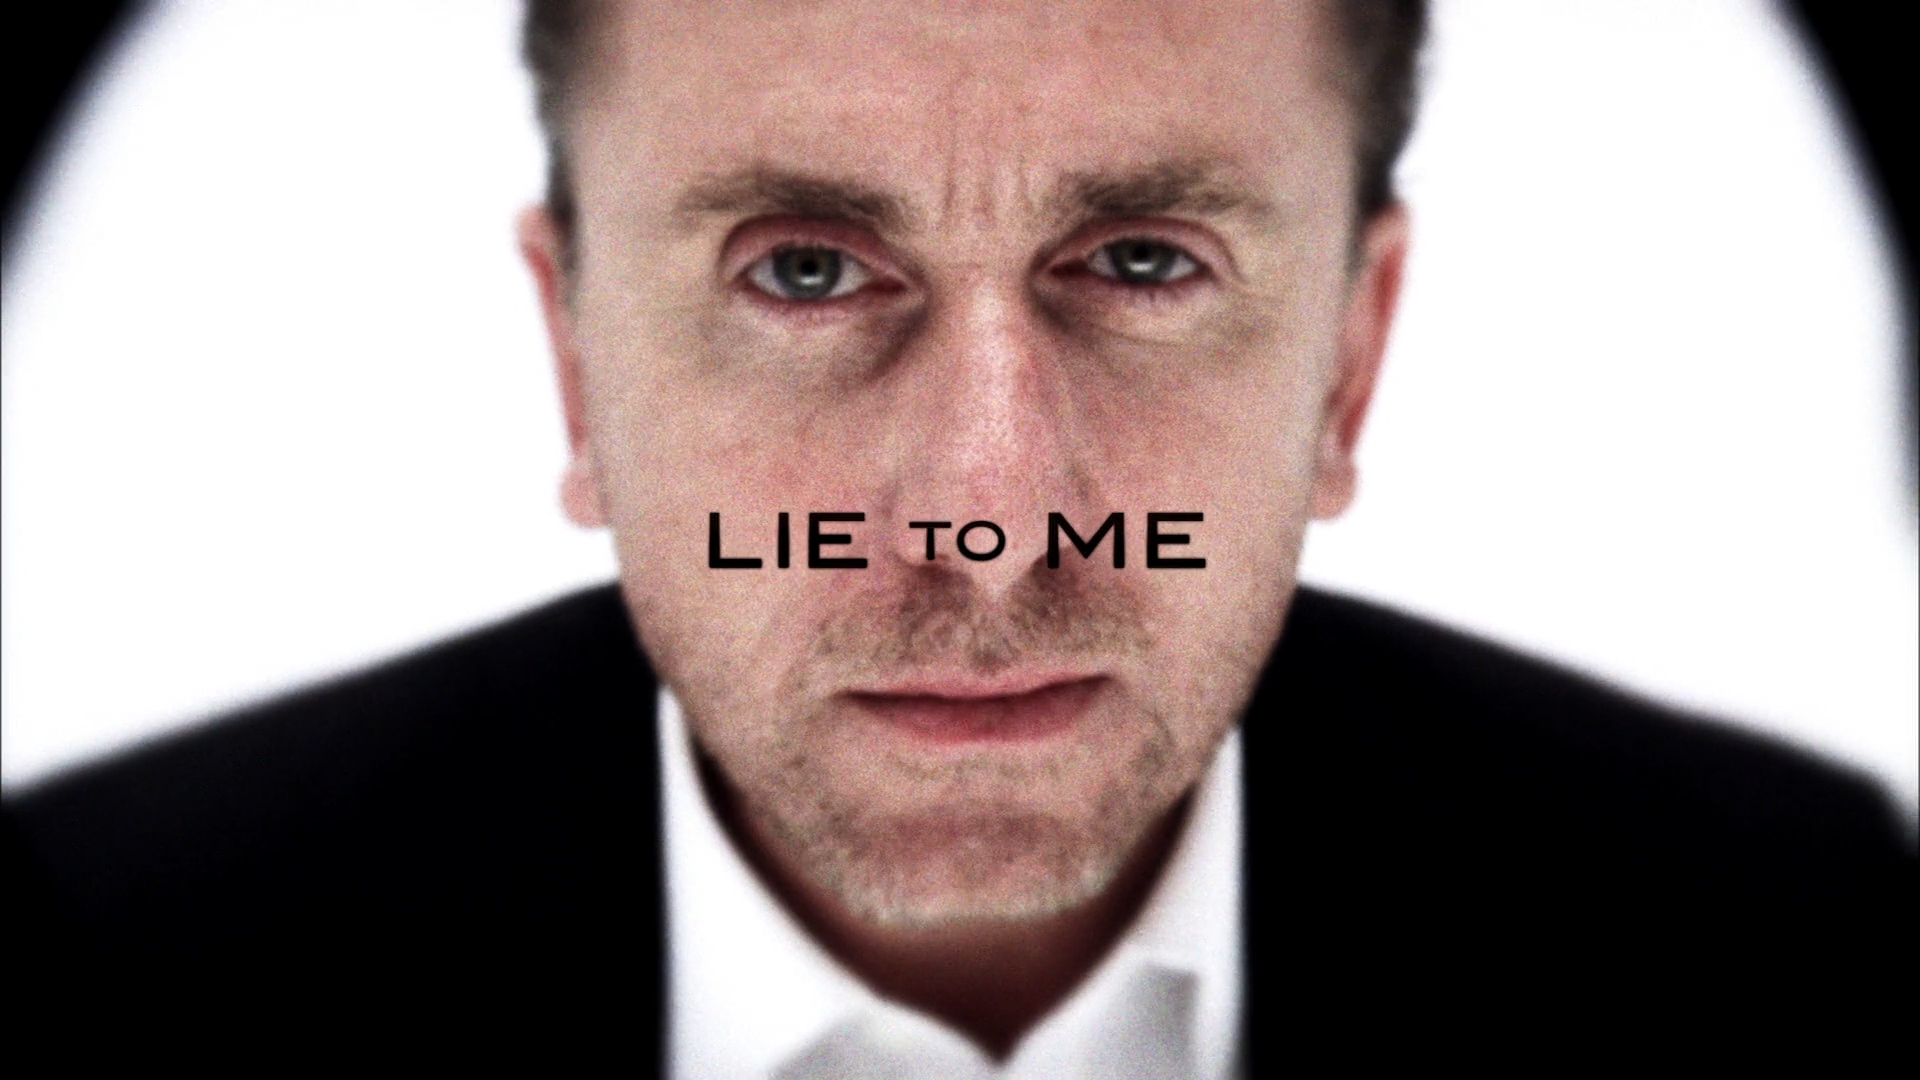 Lie-To-Me-Tim-Roth